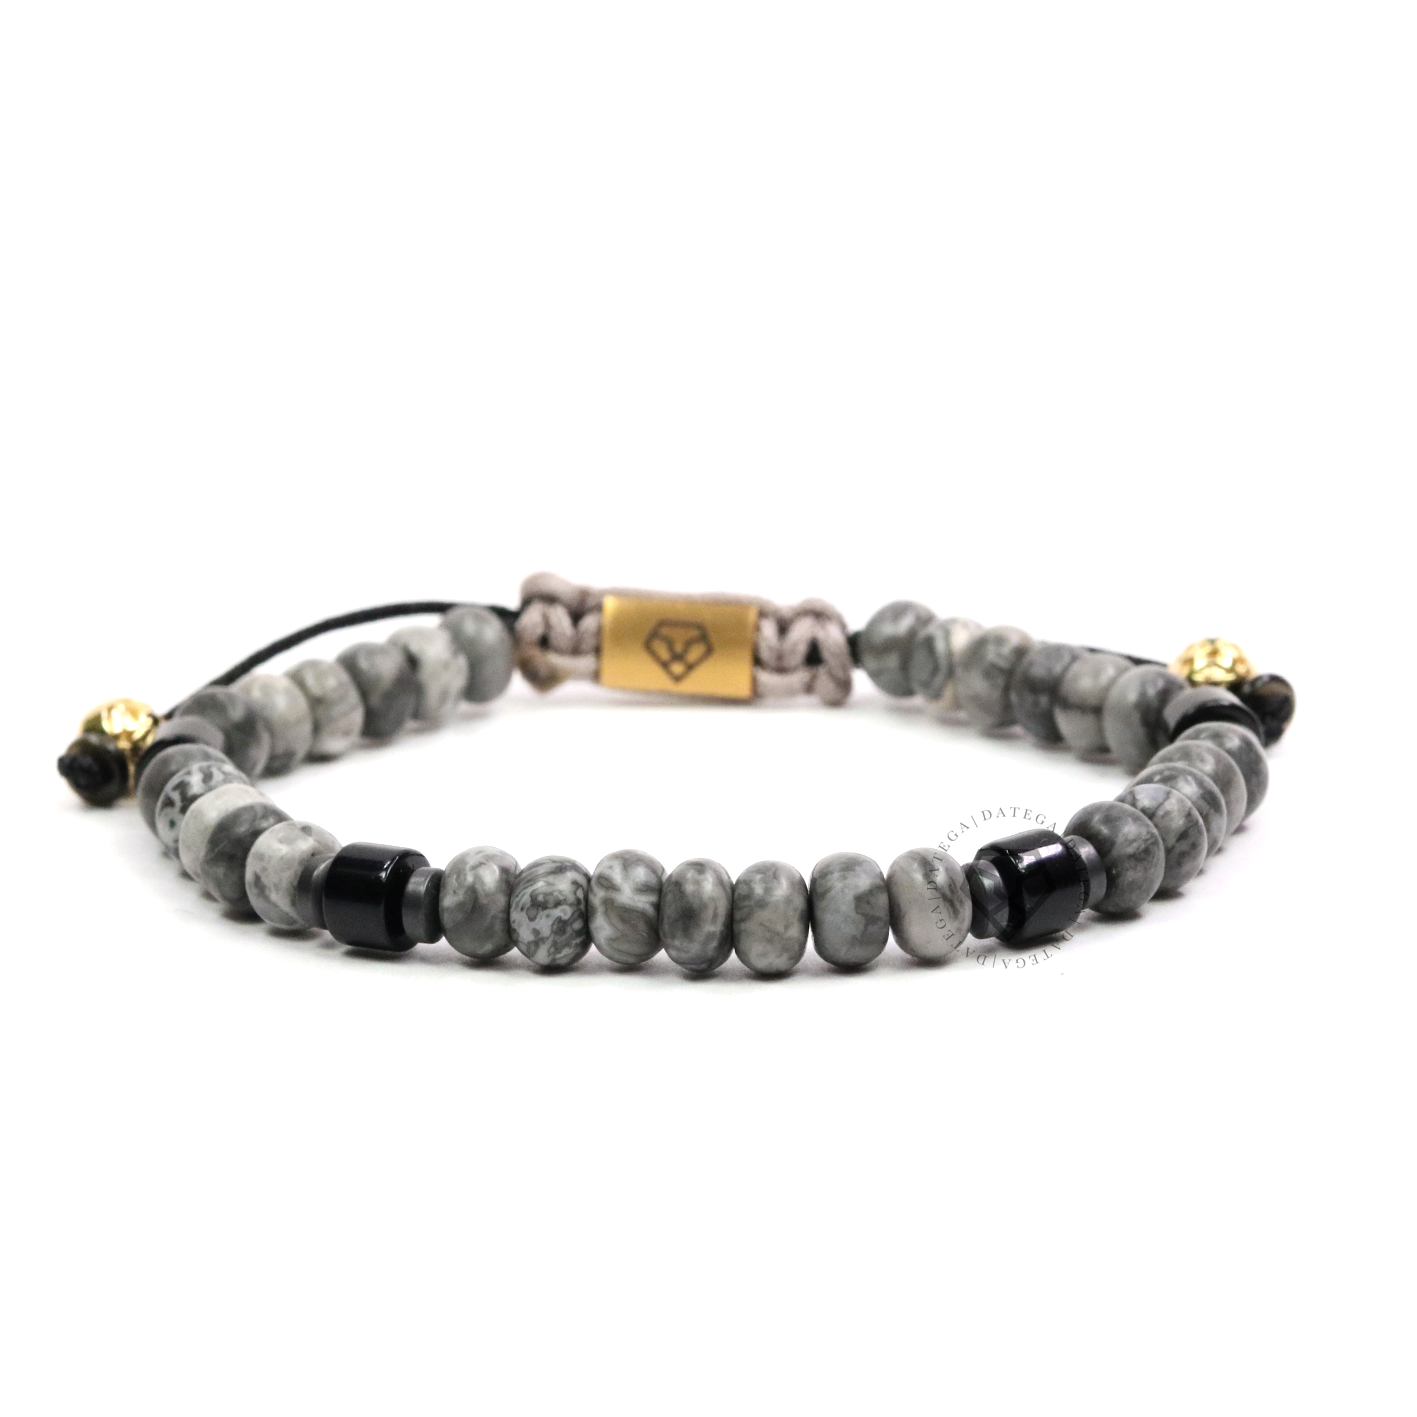 Gray Jasper Rotam & Onyx Cushion Bead